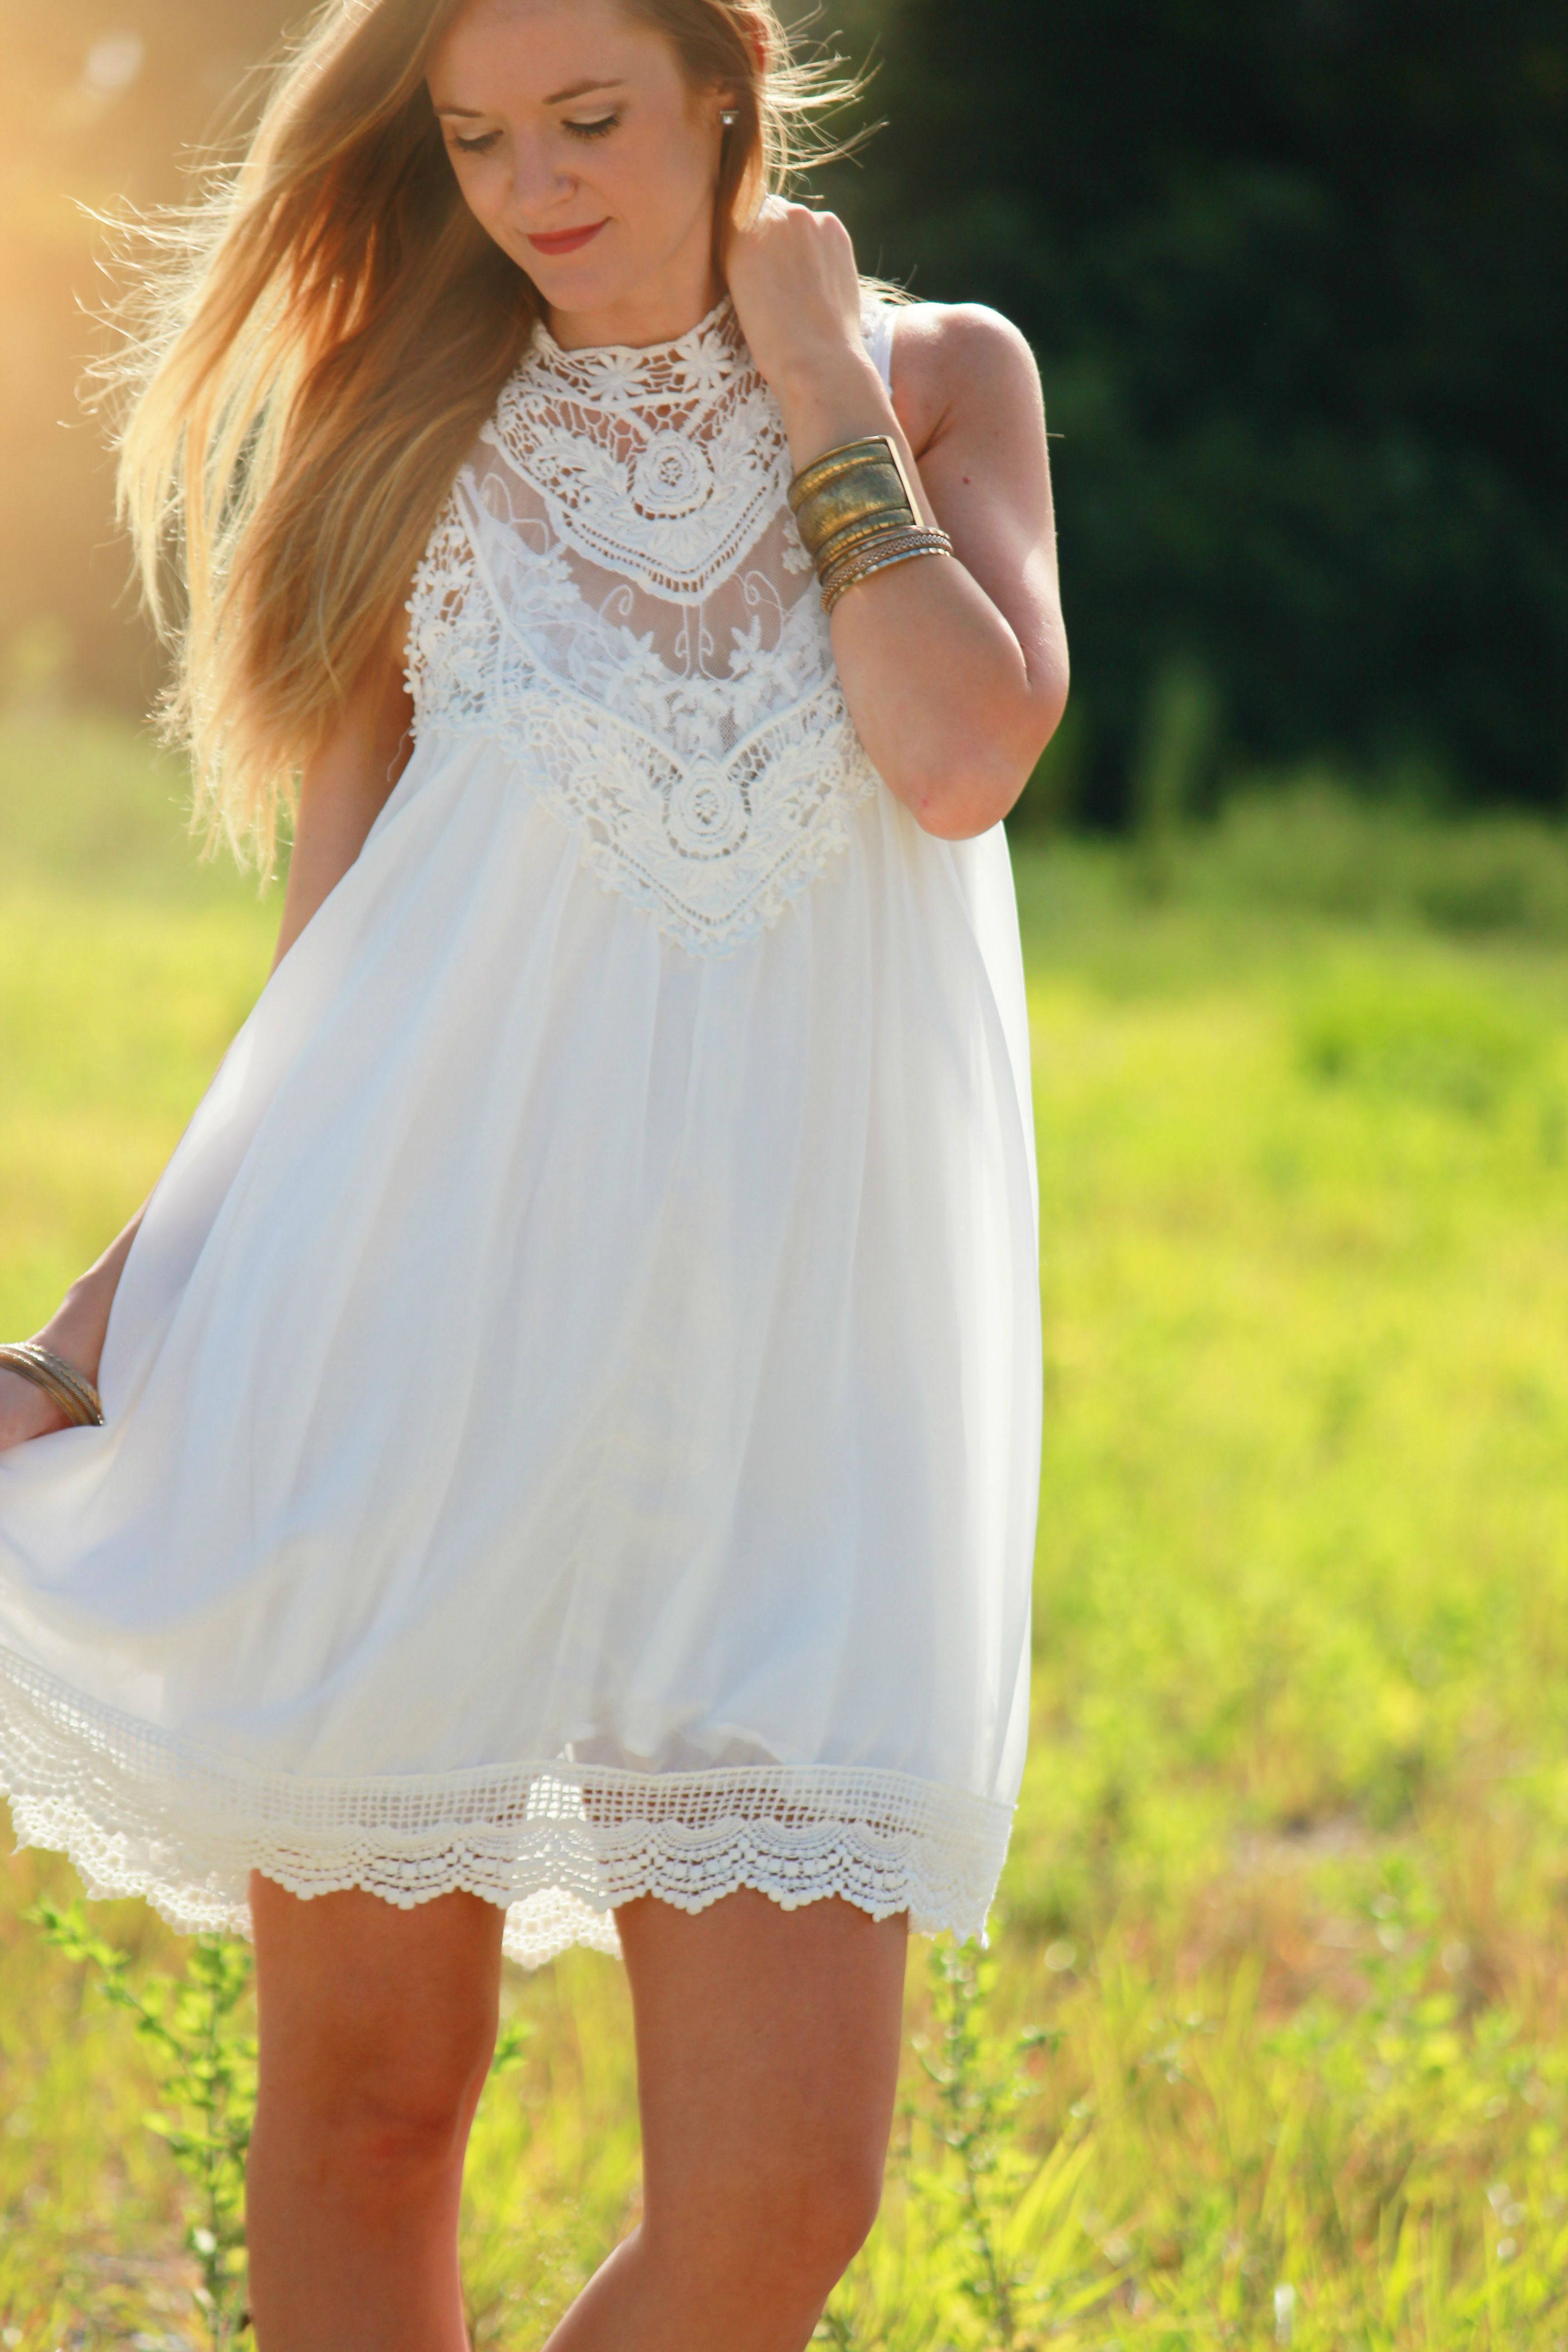 lookbook store dress, chiffon and lace dress, boho chic outfit, boho dress, white and lace dress, dsw booties, summer outfit